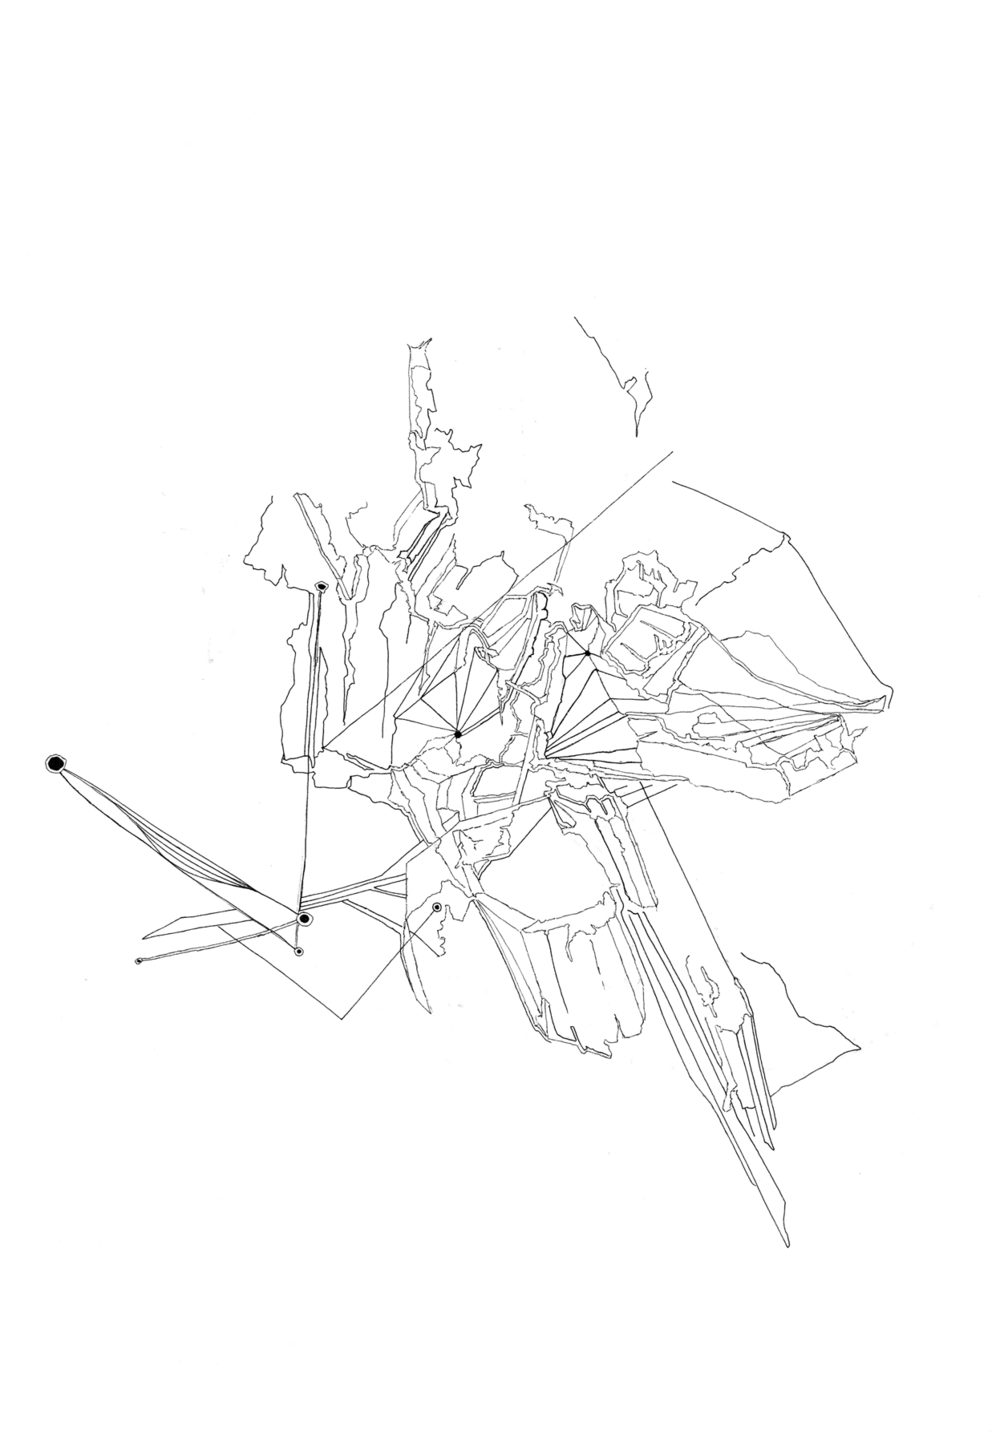 lucidstructure008|1800 copy.png